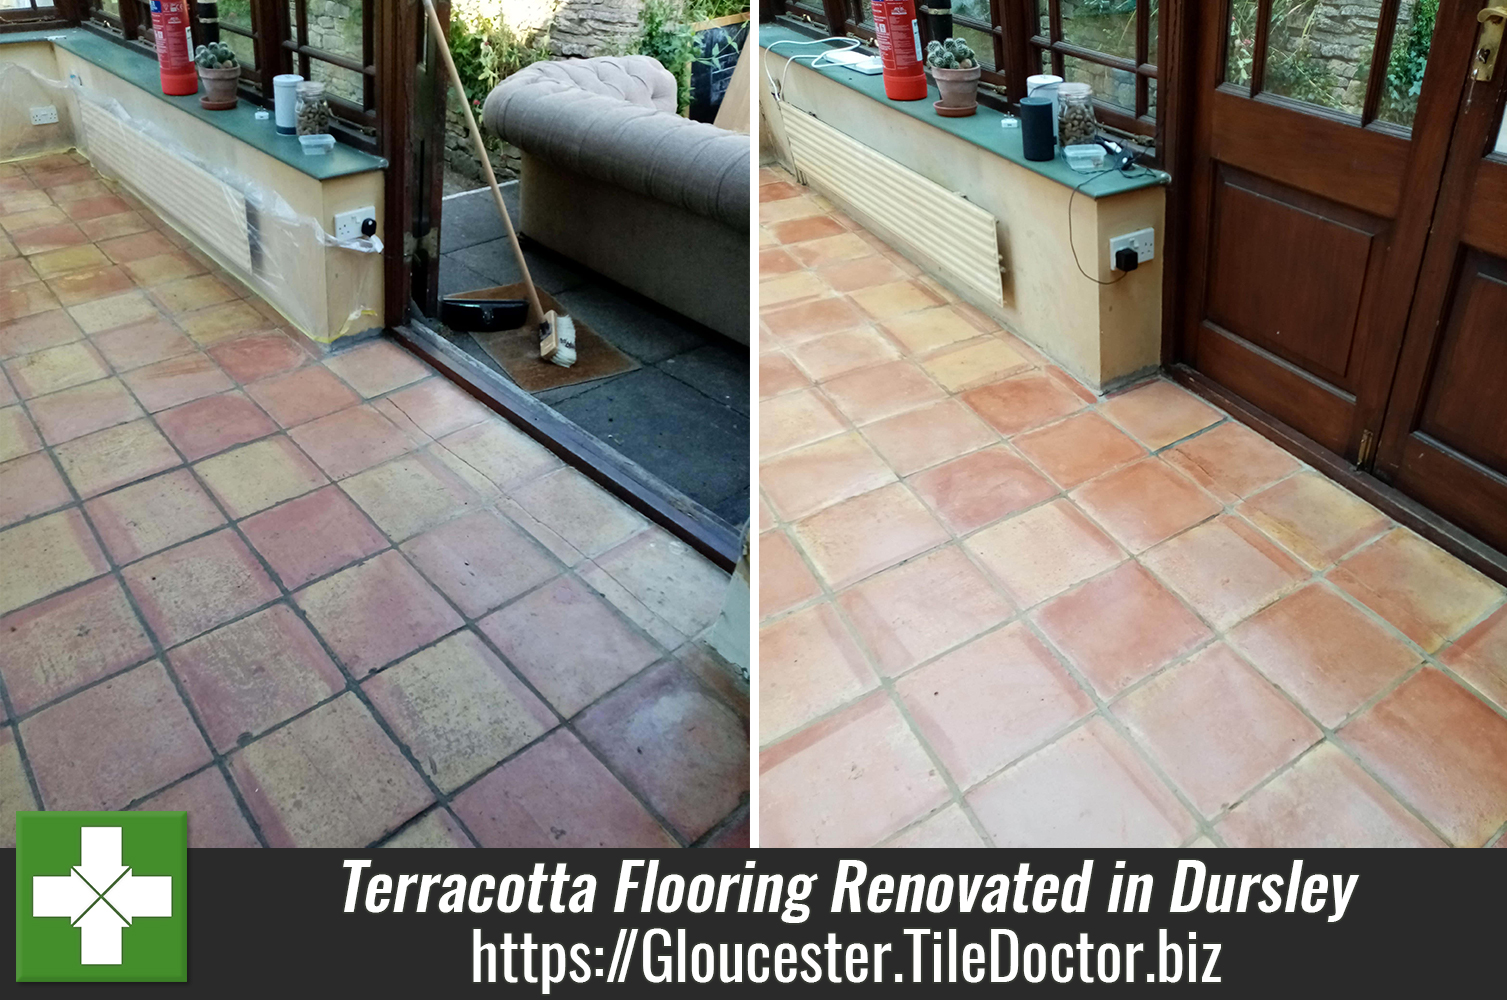 Removing Wax from 30-Year-Old Terracotta Flooring in Dursley